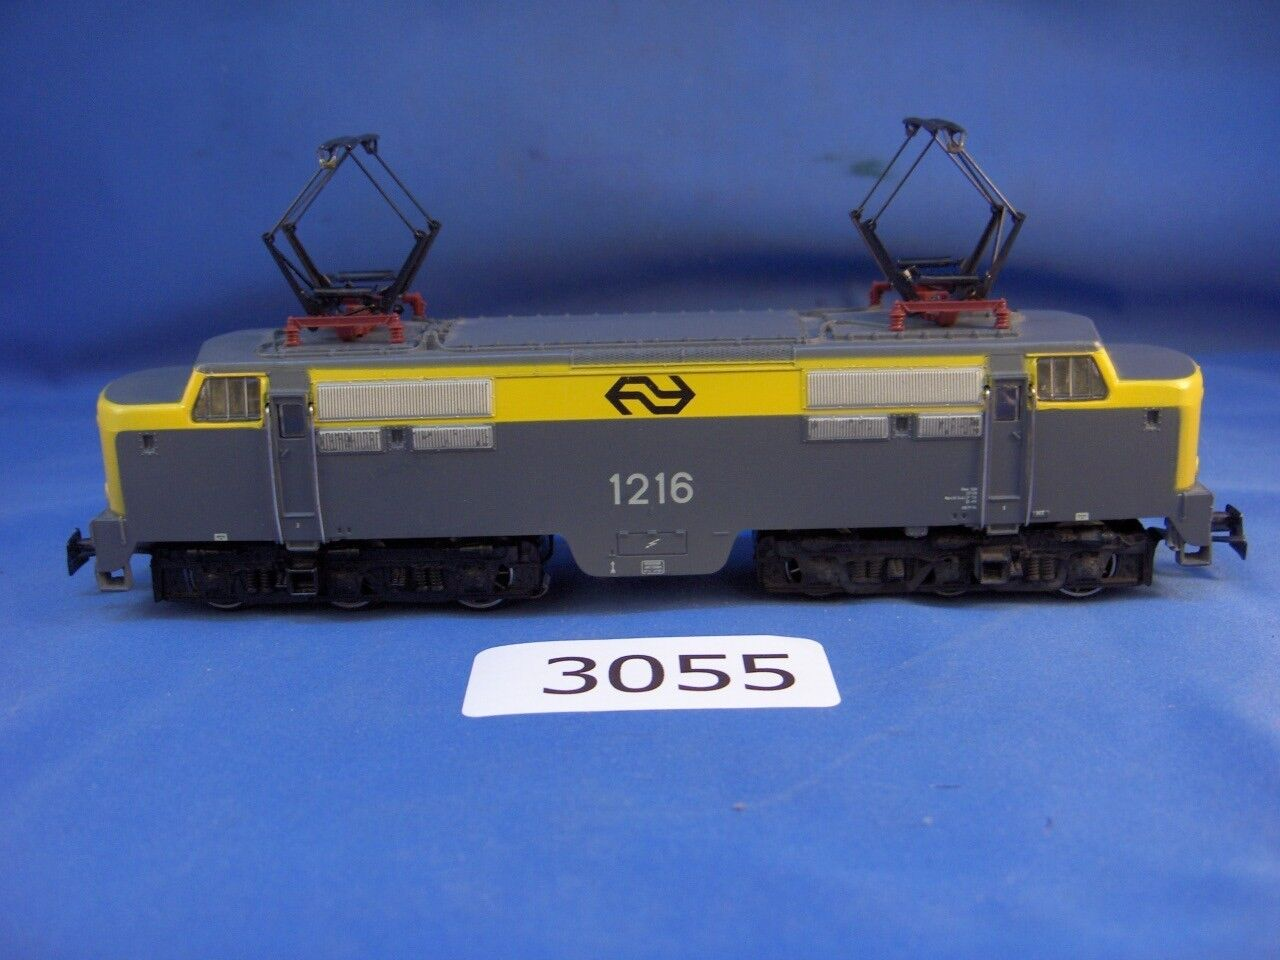 EE 3055 Marklin Class 1200/NS Holland Electric Locomotive